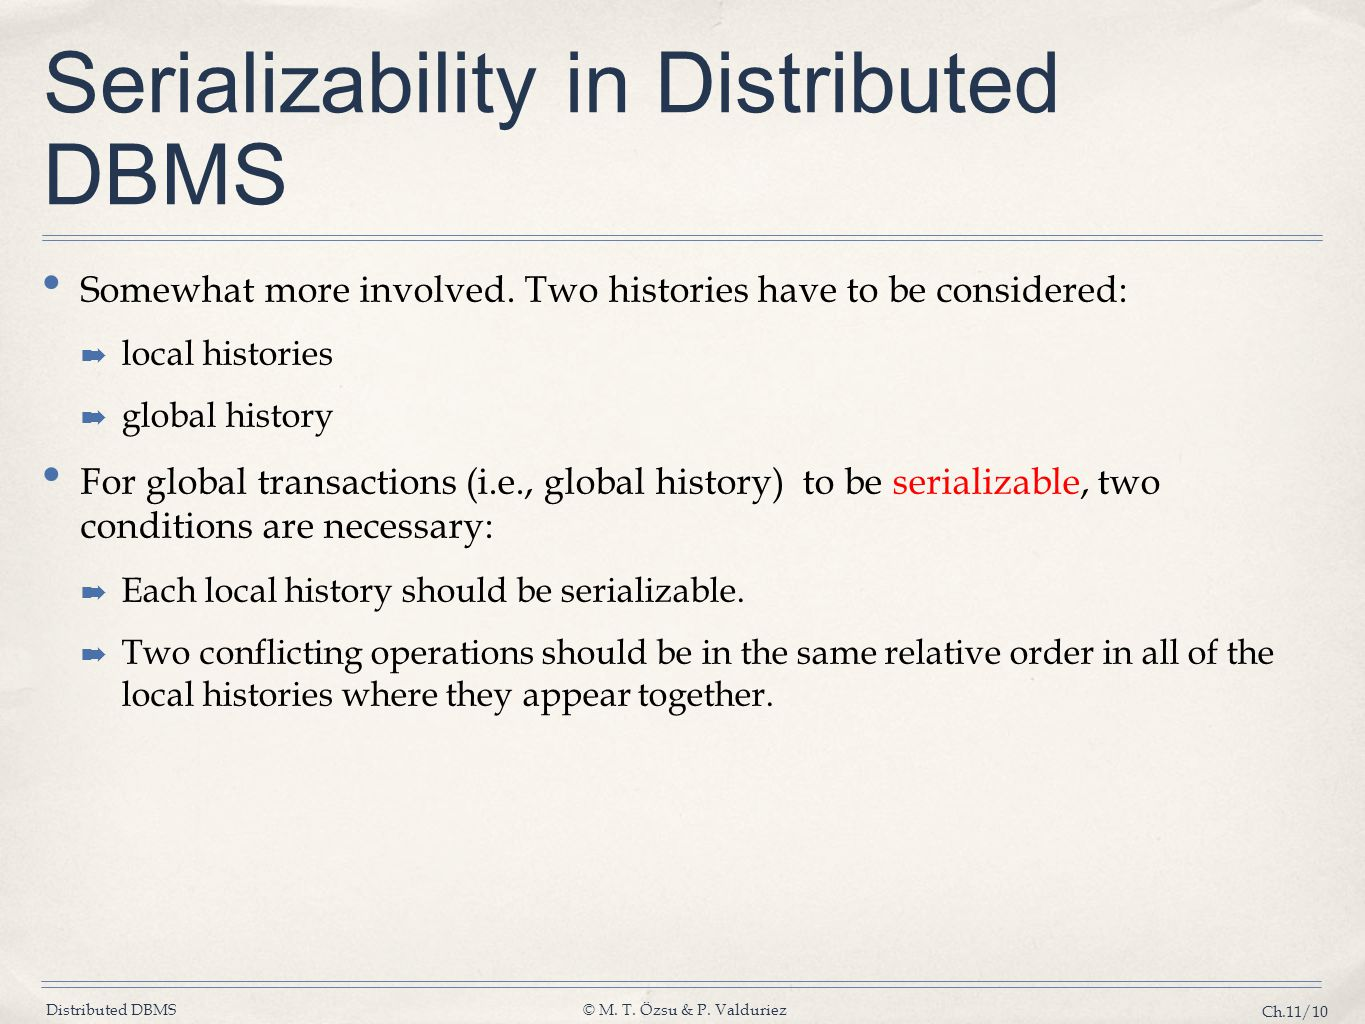 Serializability in Distributed DBMS